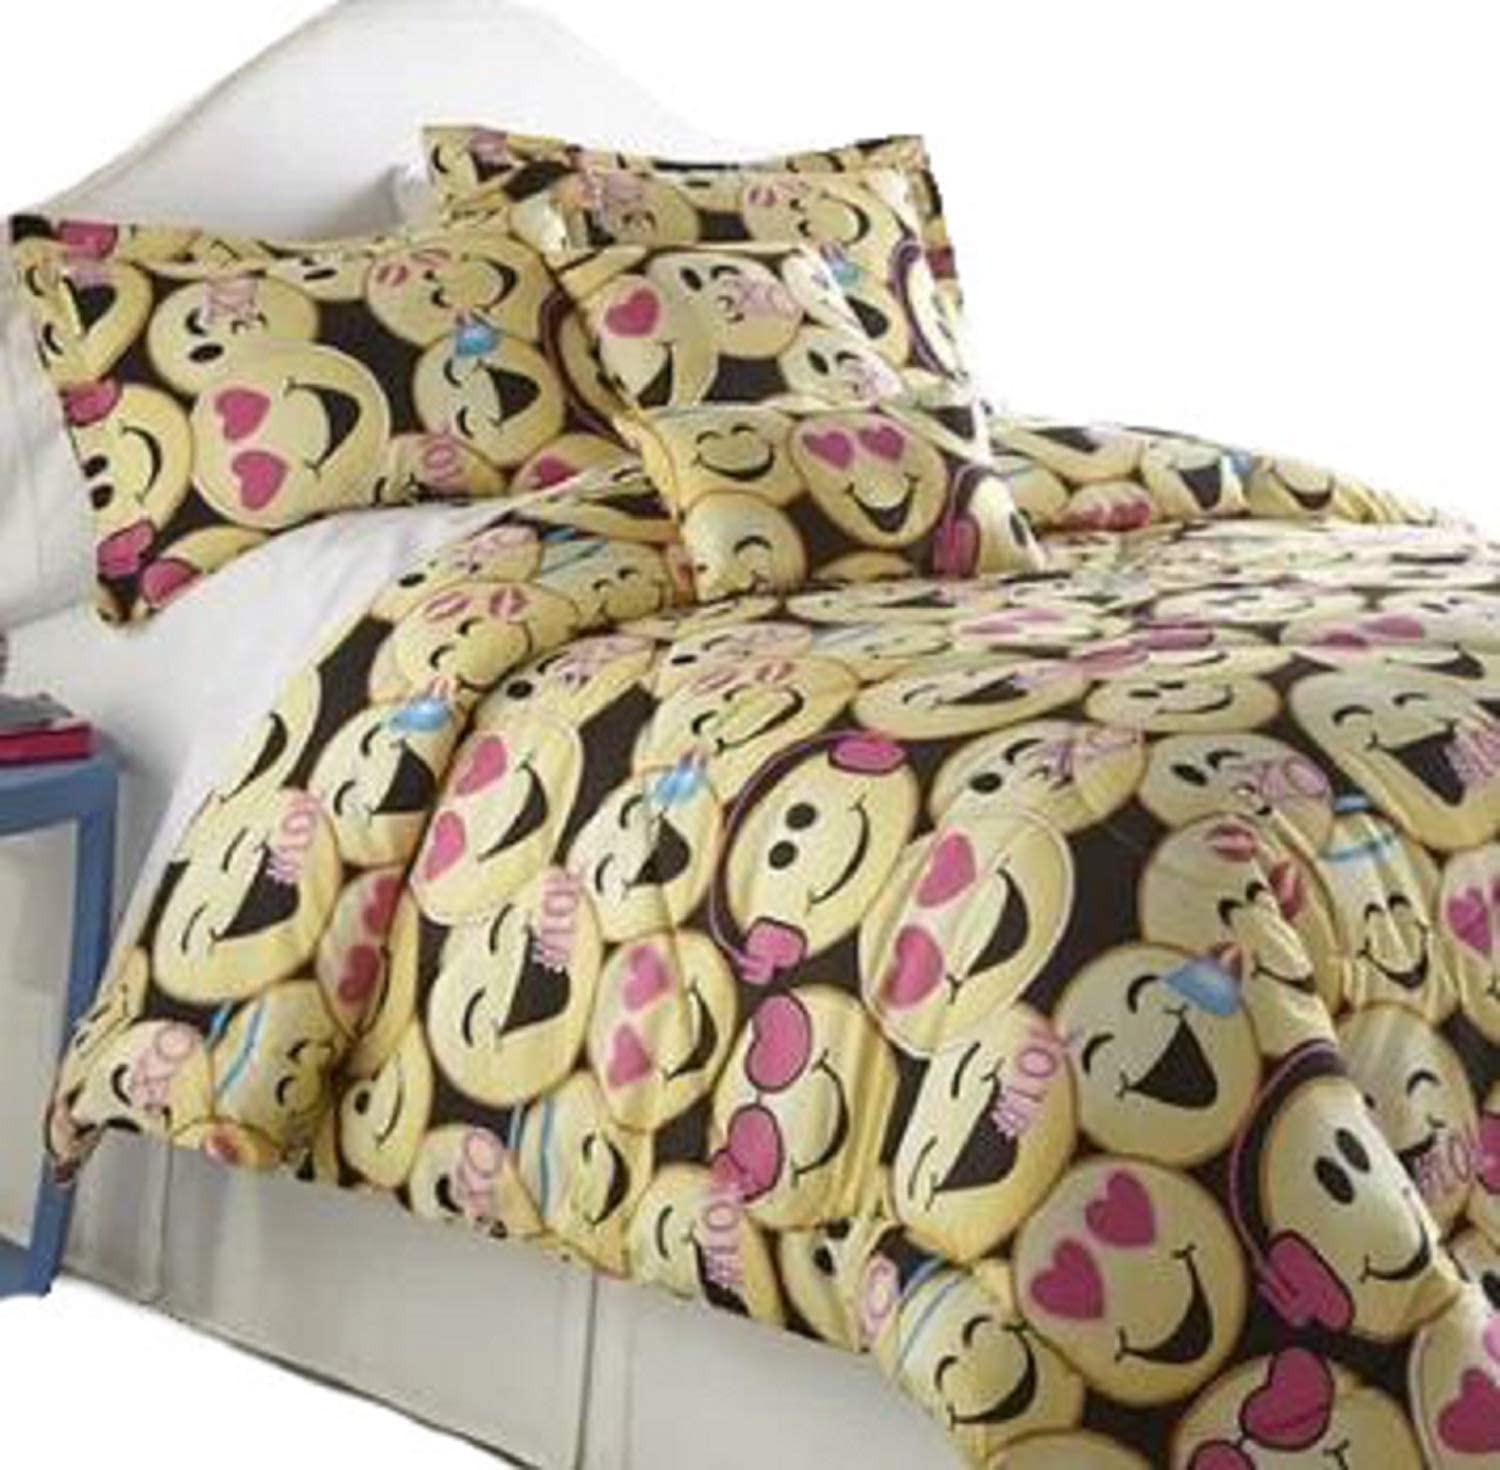 Printed Fashionable Comforter Bedding Set. Bamard Hypoallergenic 20'' W x 26'' L Emoji Printed Fashionable Comforter Bedding Set Pillow Shams Included with Wrinkle Resistant